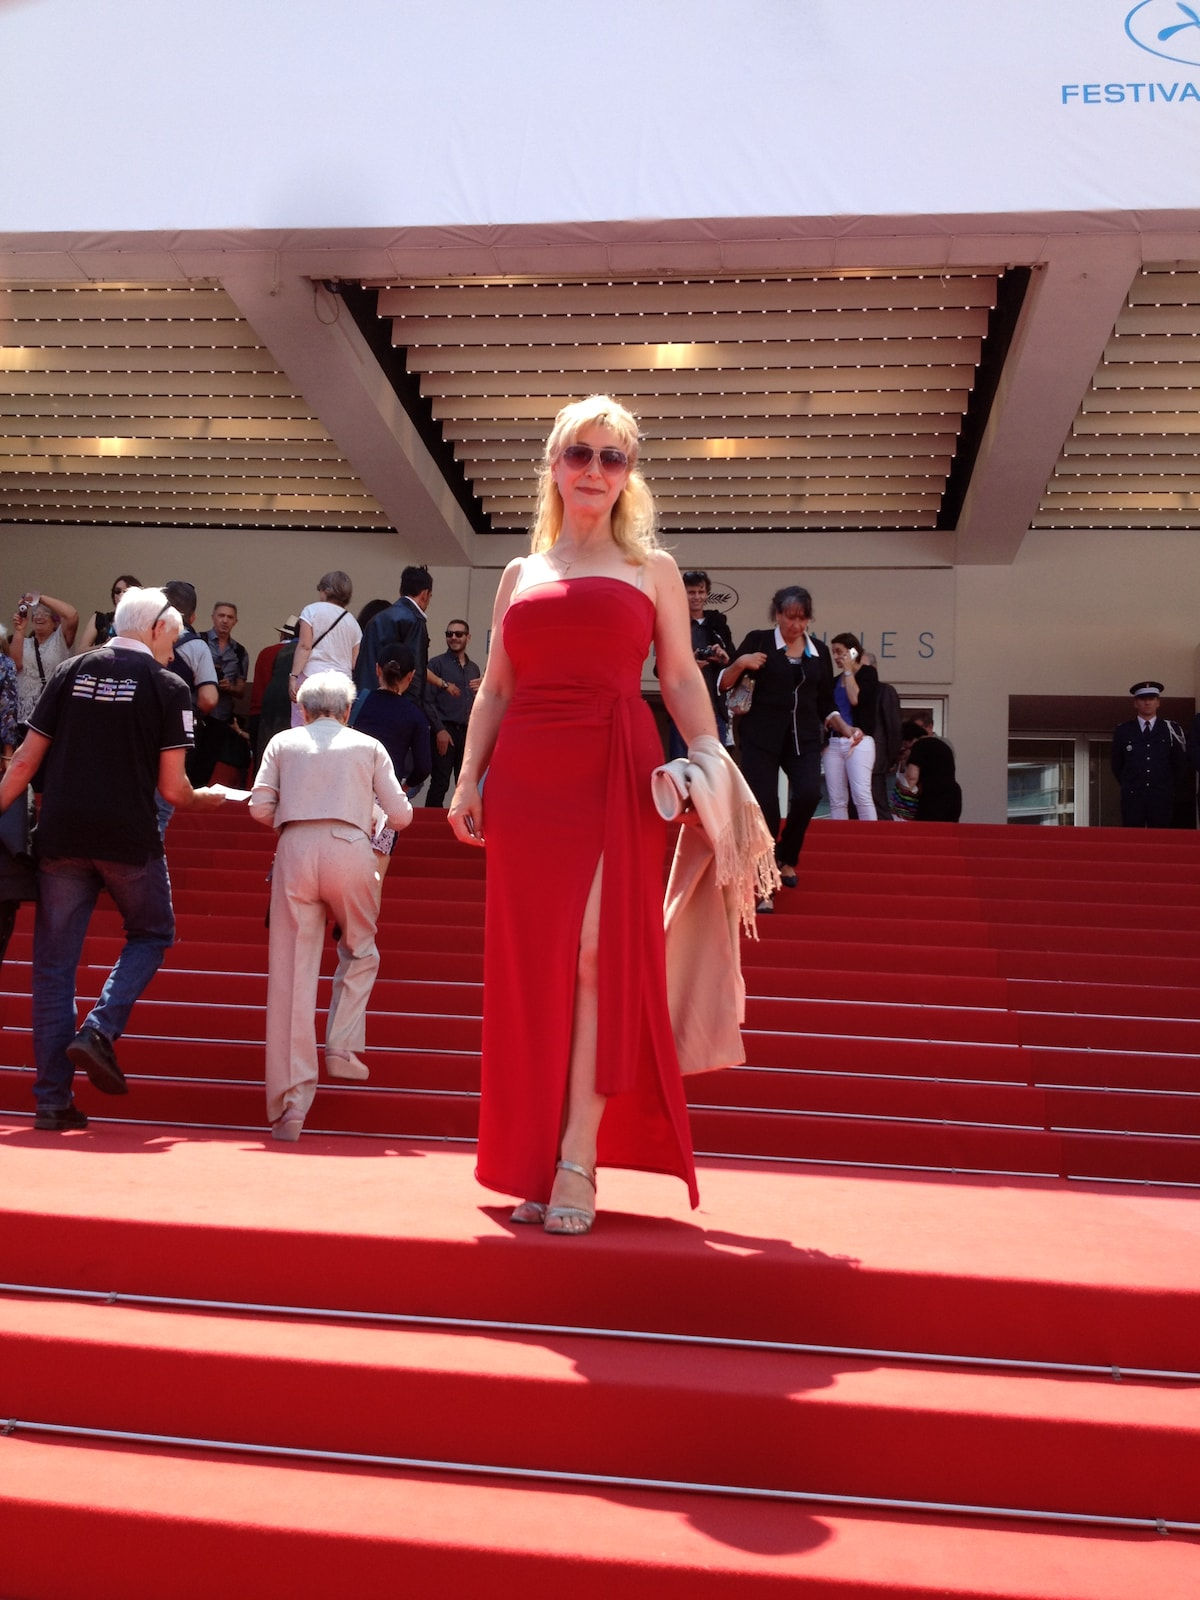 Aida From Cannes, France